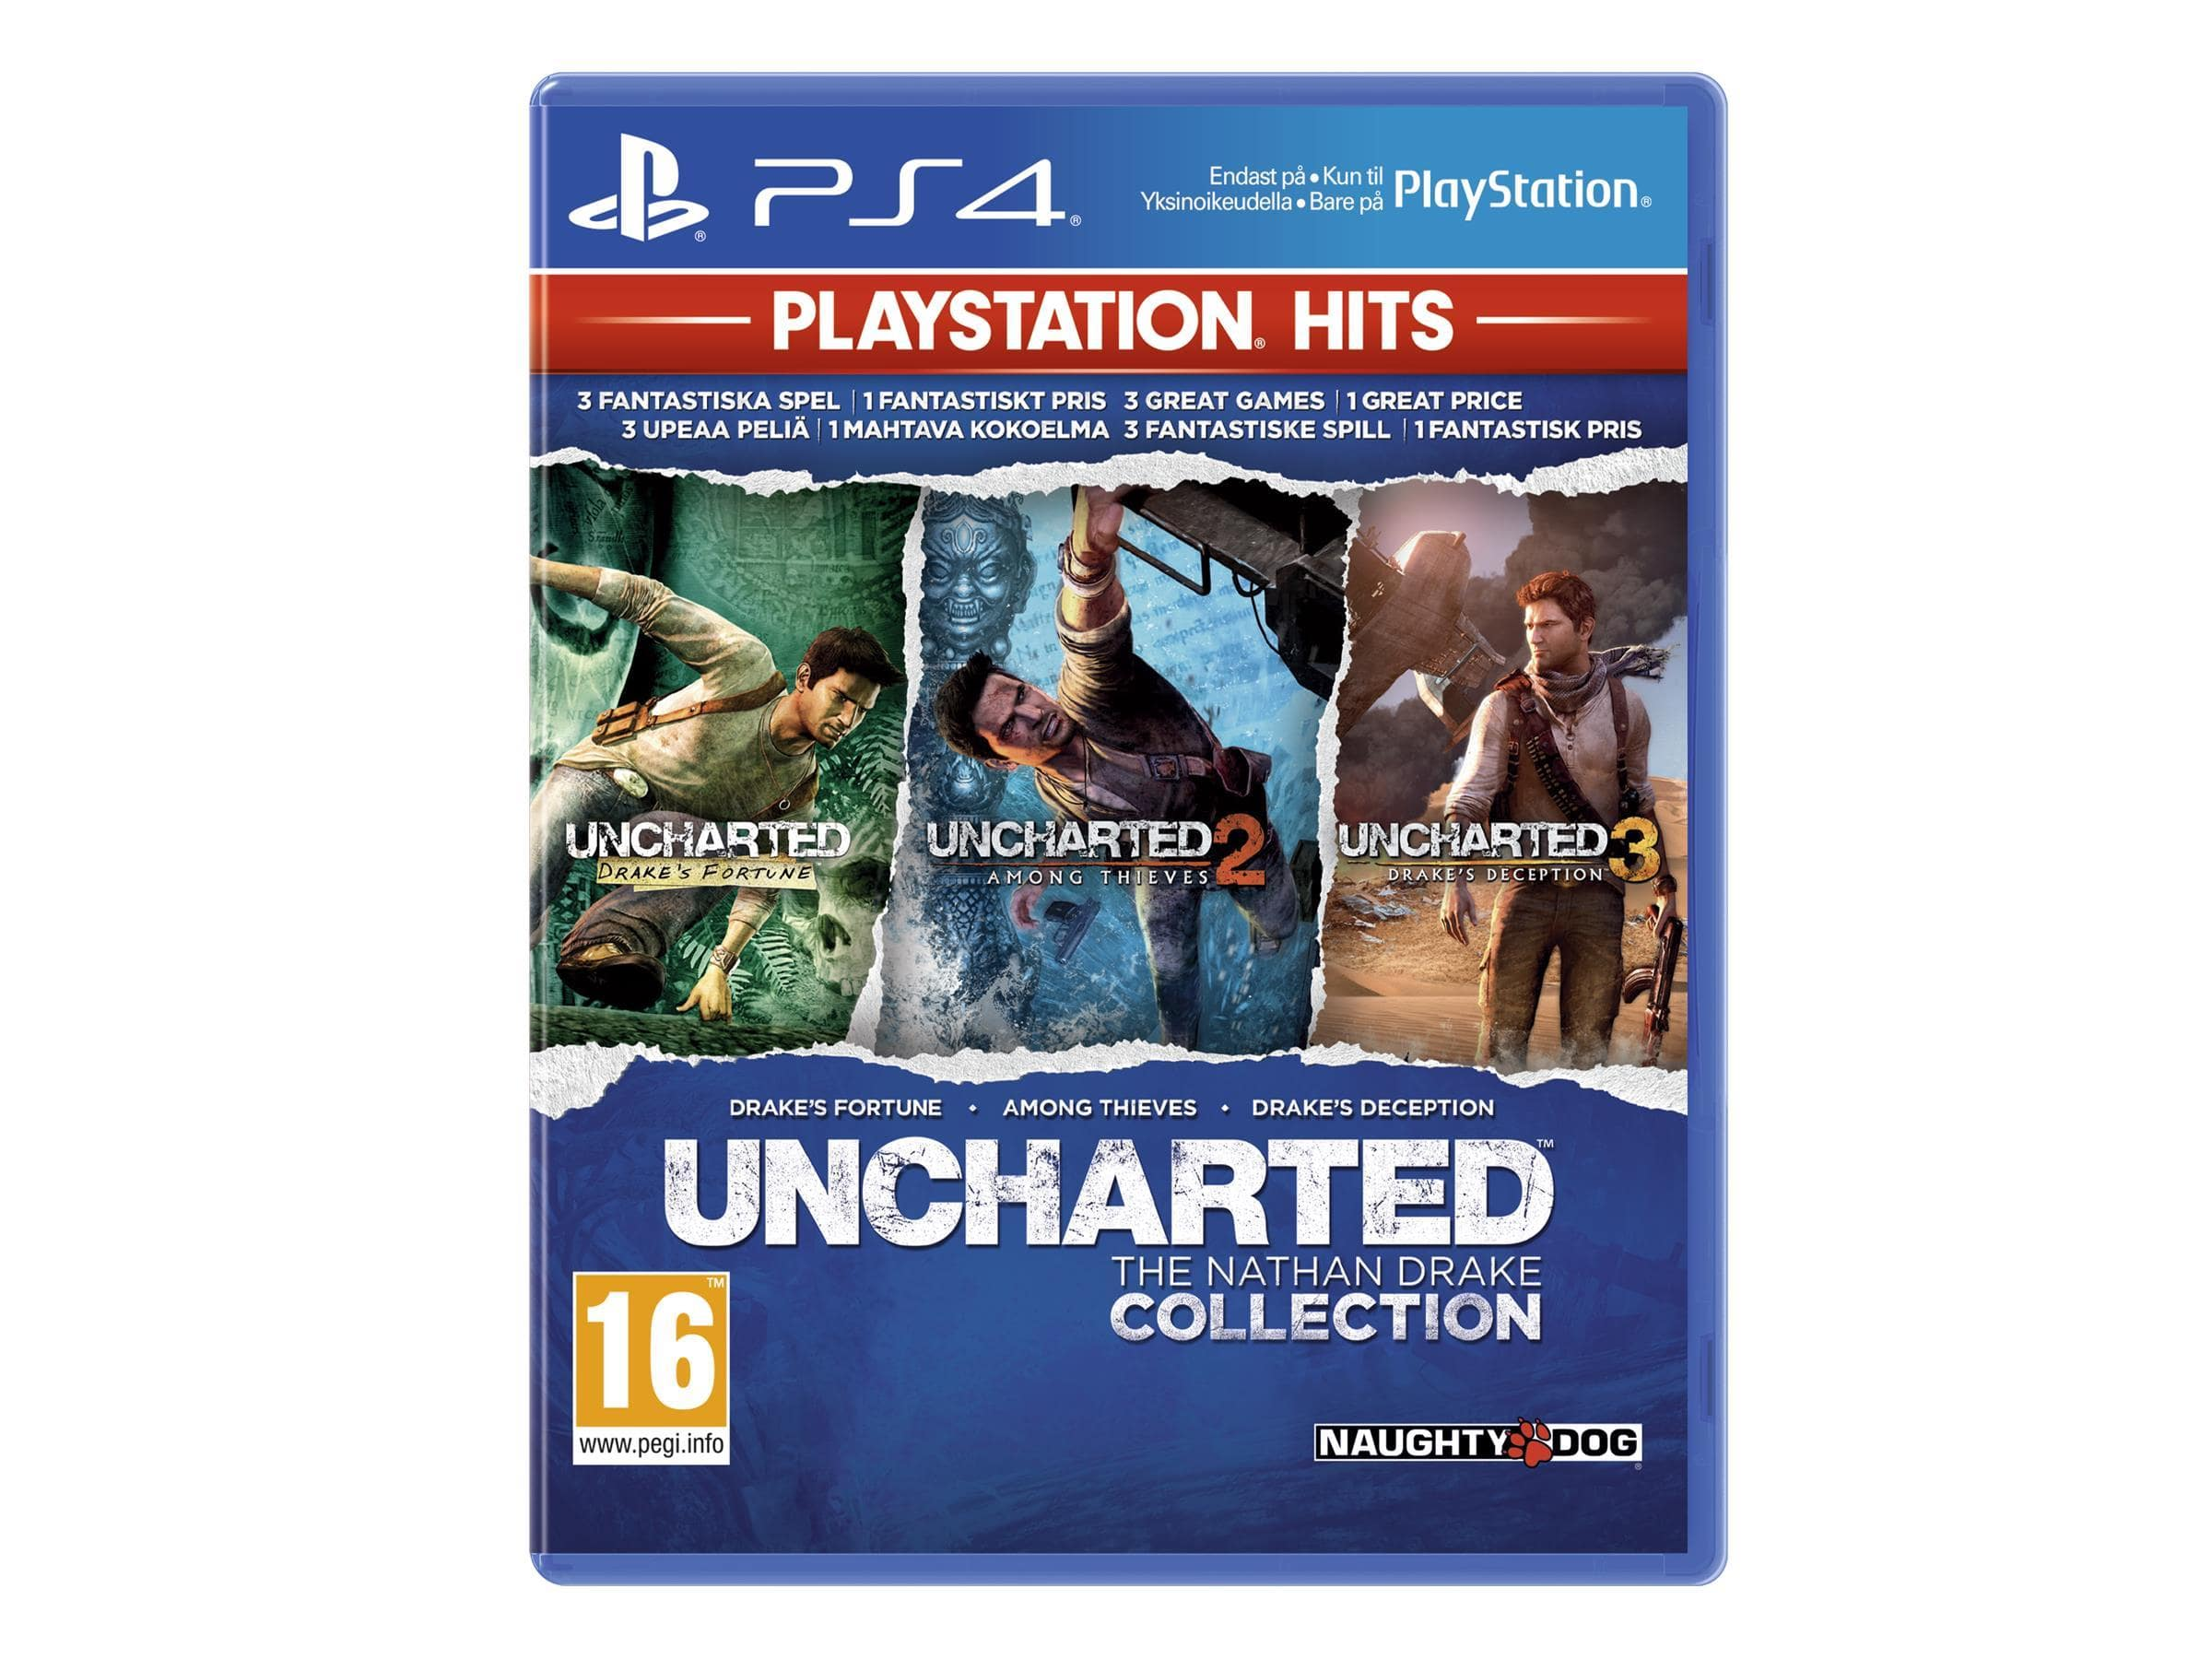 Uncharted: The Nathan Drake Collection (Playstation Hits)